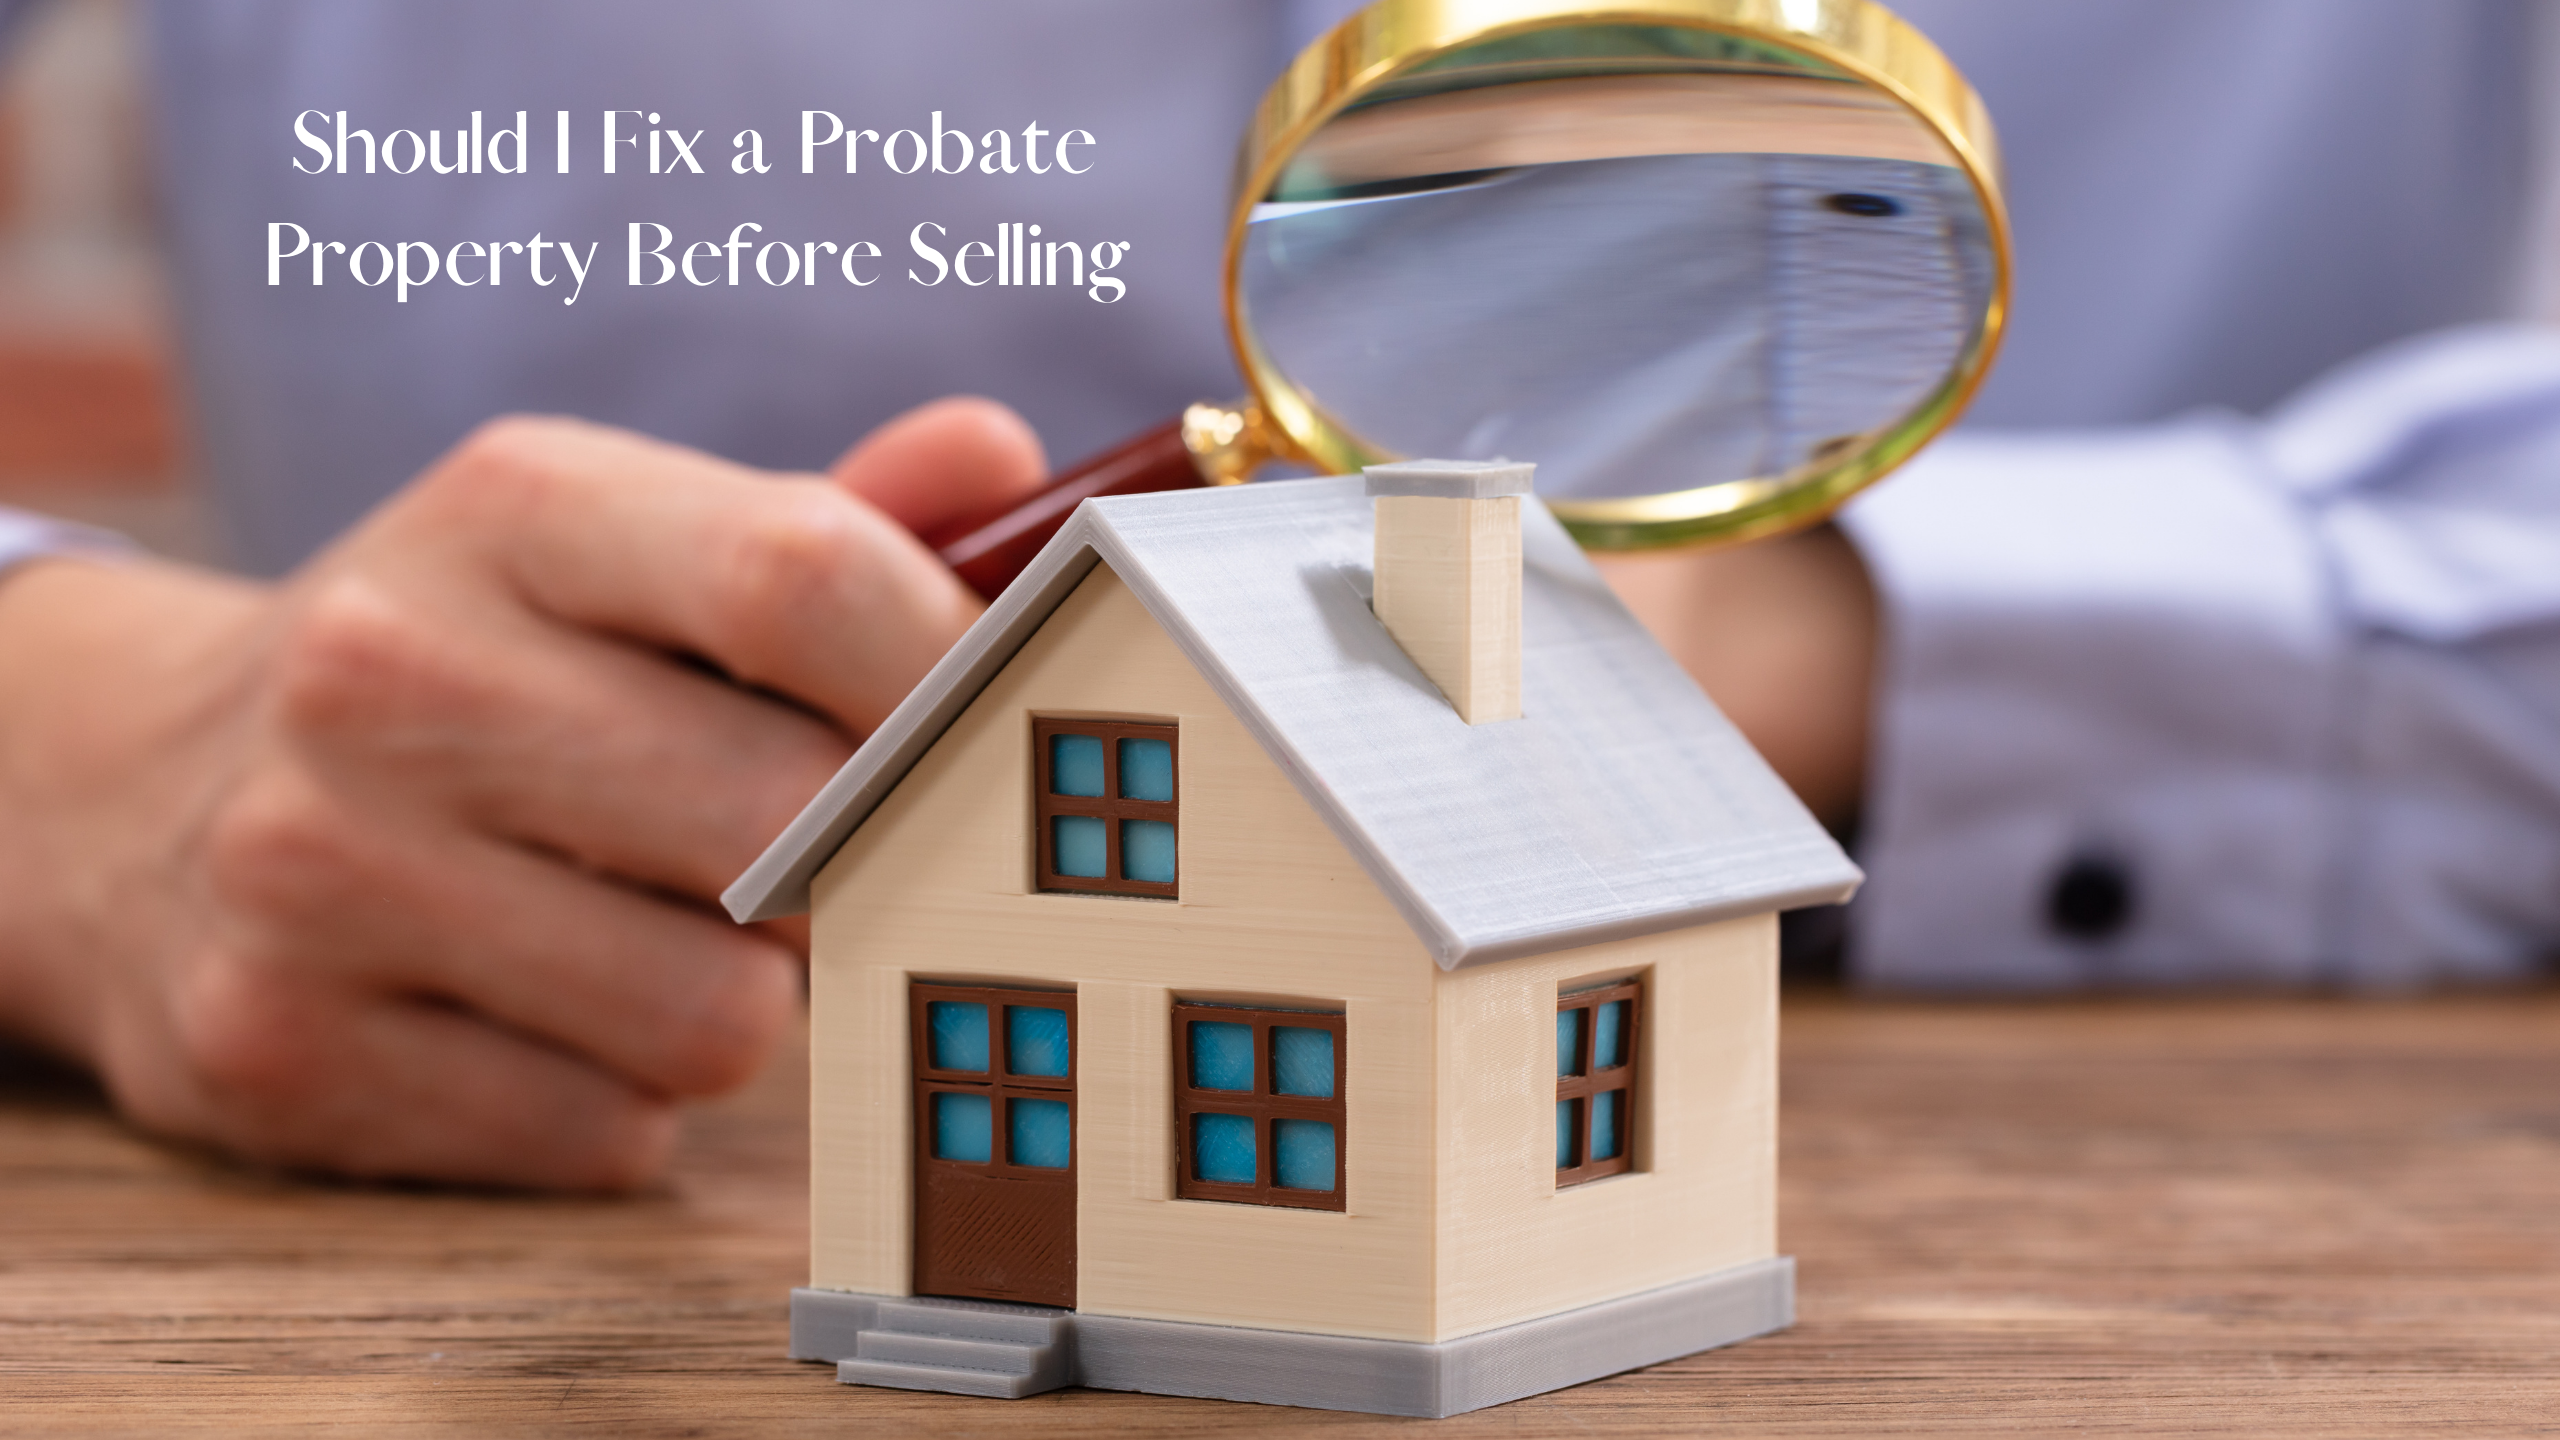 Should I Fix a Probate Property Before Selling